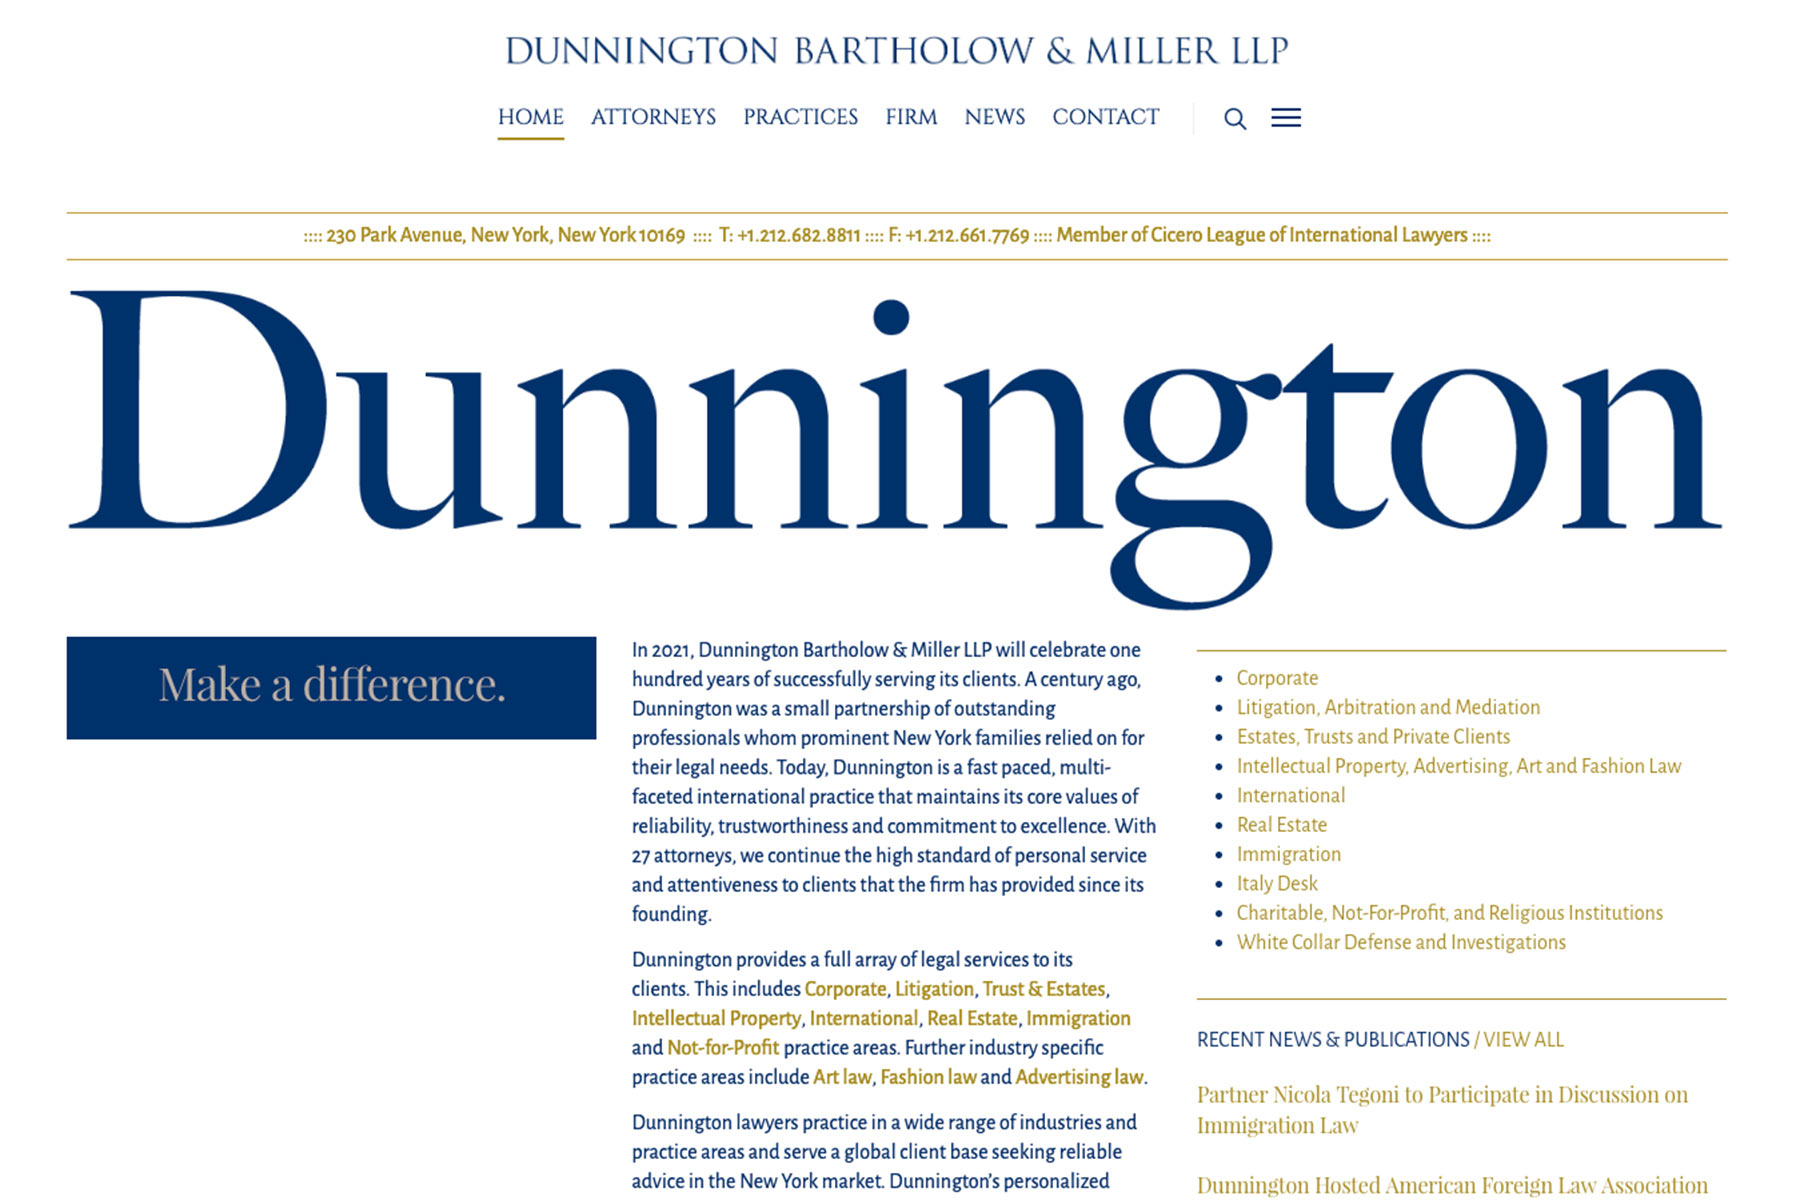 dunnington-homepage